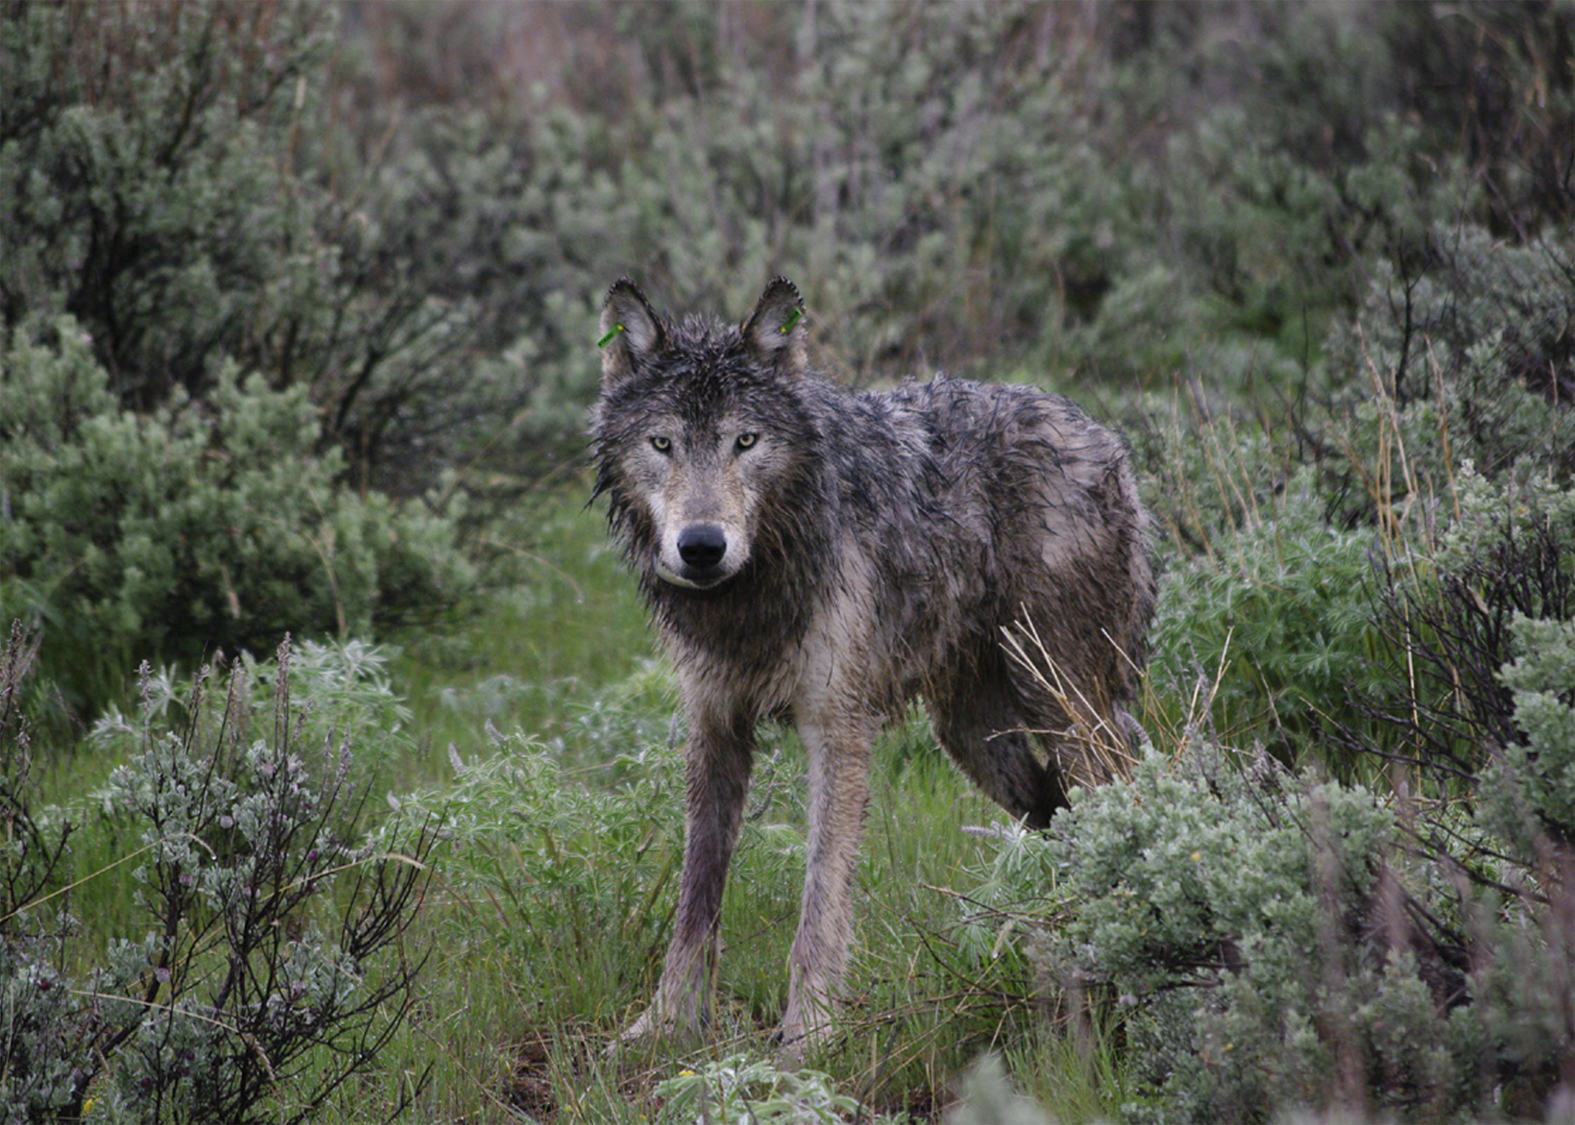 Wolf after release in 2009. This was the first tagged wolf in Oregon, since the beggining of their return in 2008. (Photo ODFW)